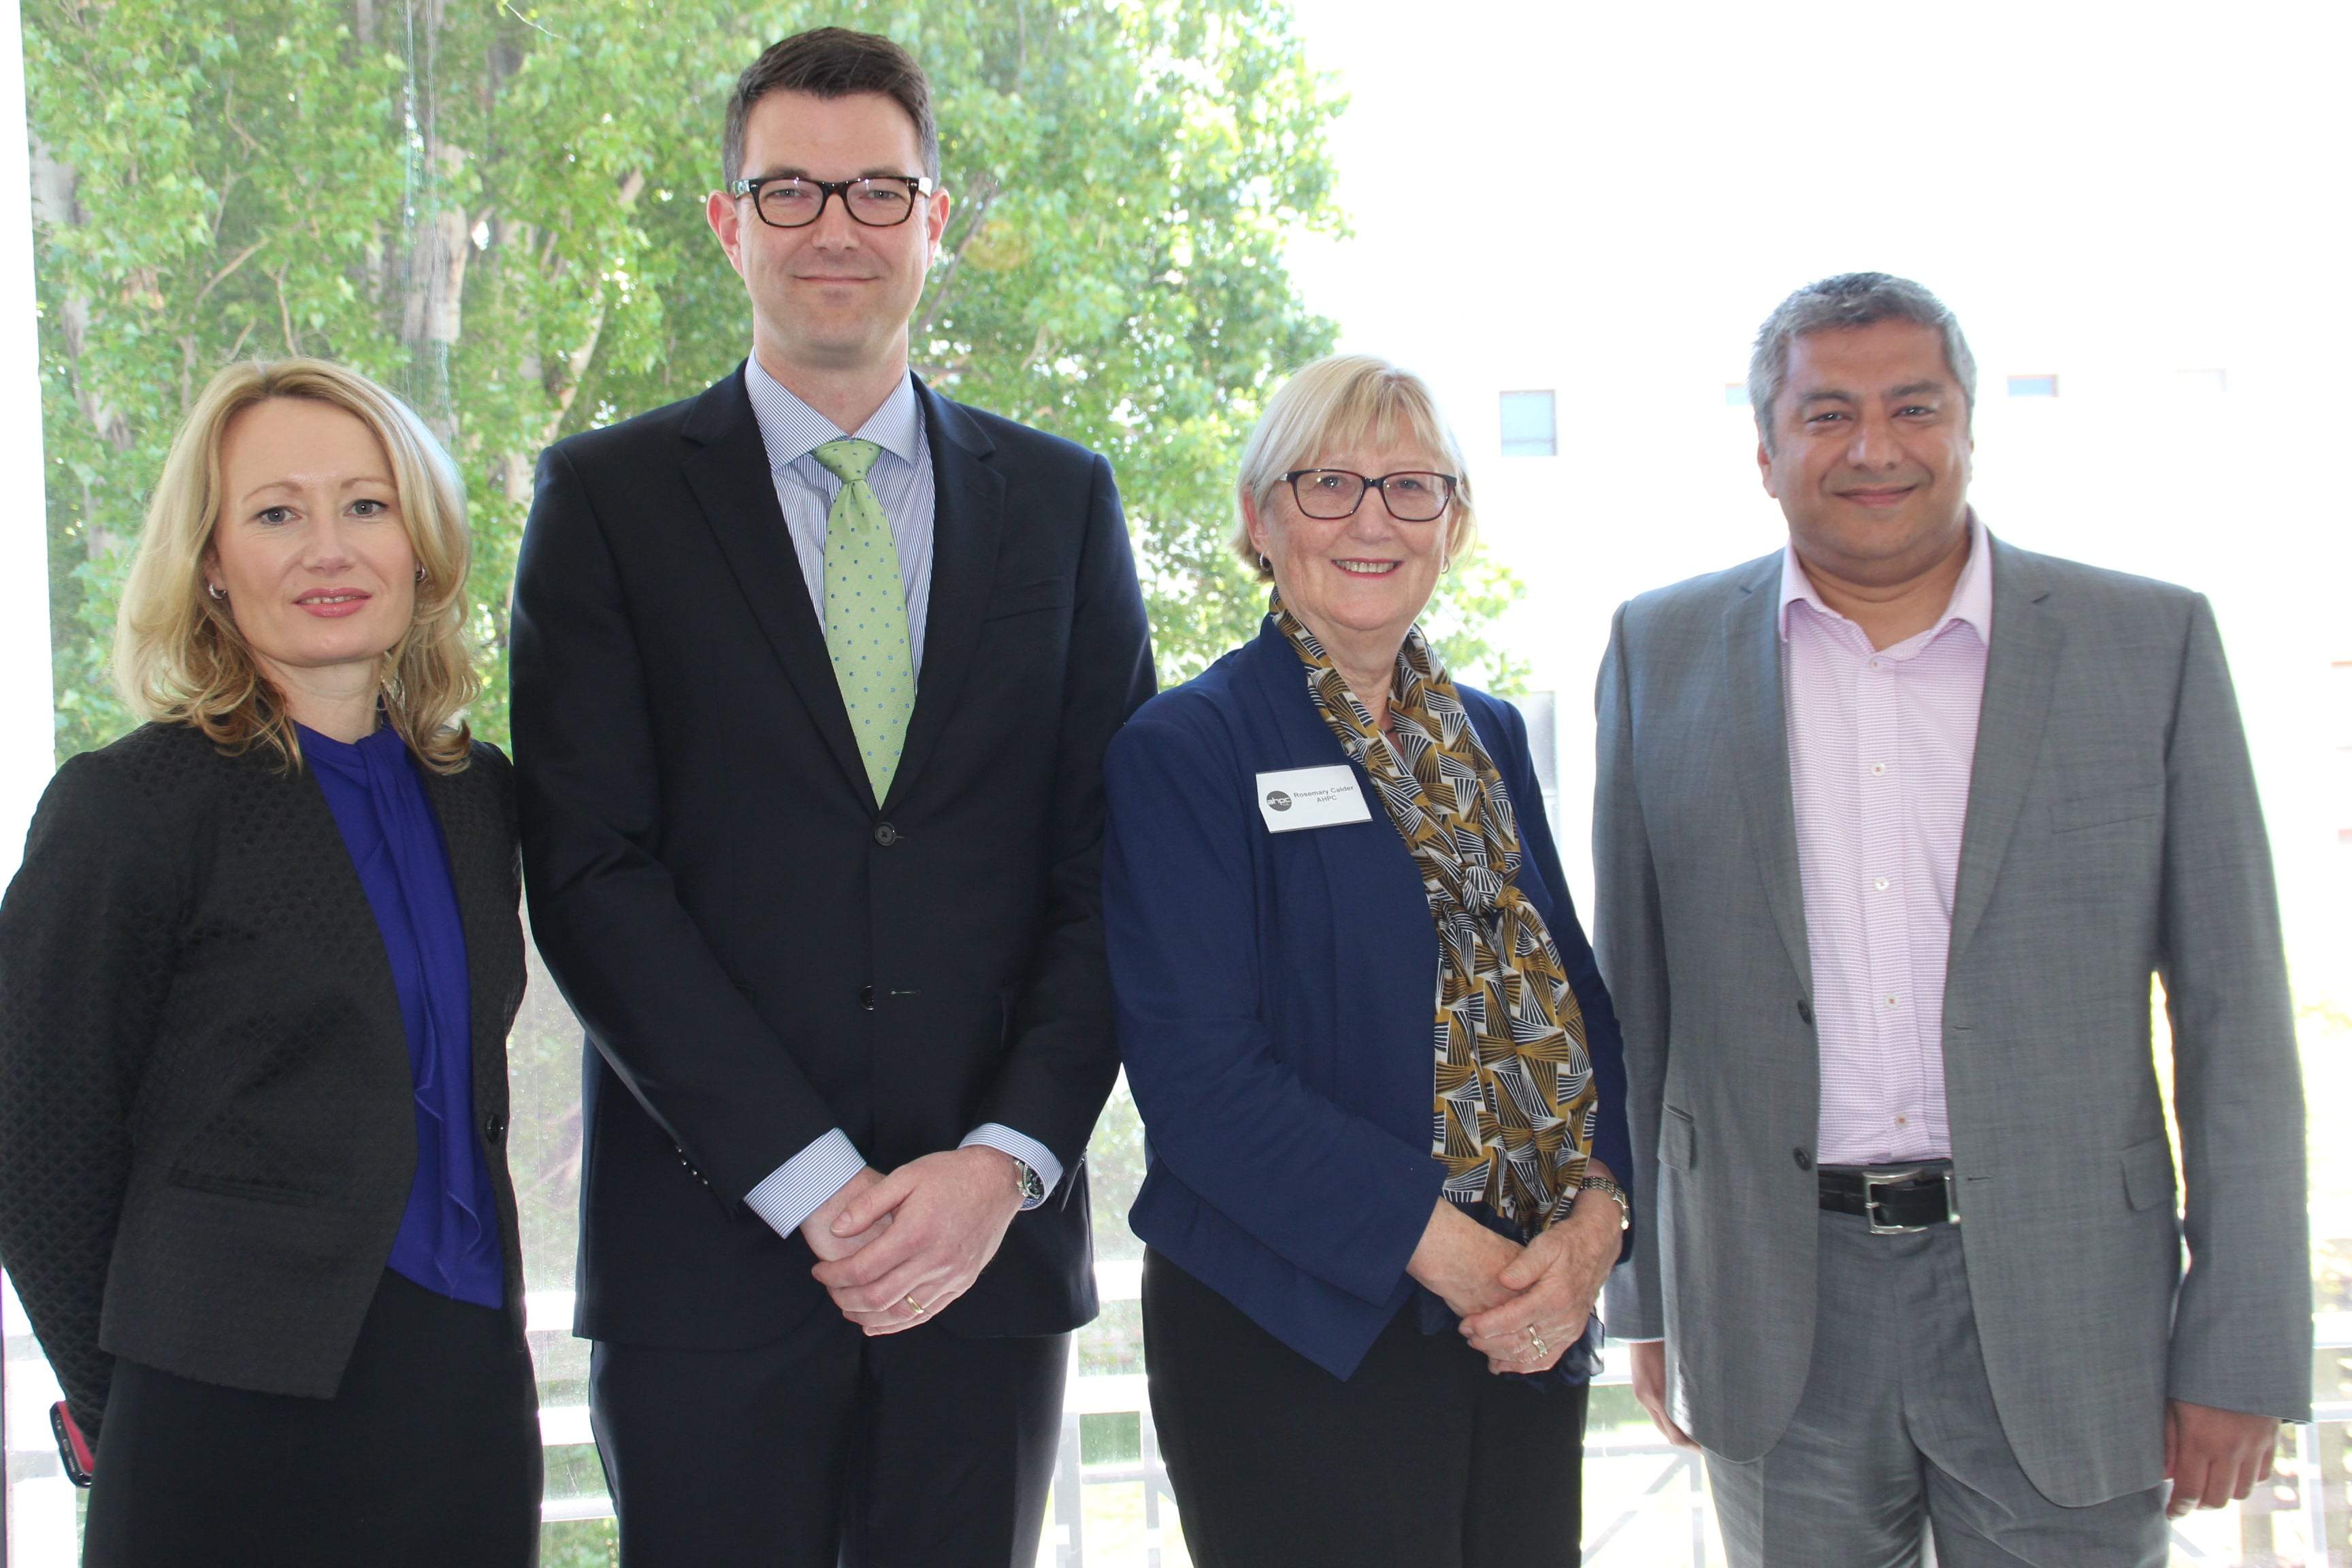 Sharon McGowan, chief executive officer of Stroke Foundation; Dr Bastian Seidel president of the Royal Australian College of General Practice; Professor Rosemary Calder, Director of the Australian Health Policy Collaboration and Dr Paresh Dawda, GP, Regional Medical Director, Ochre Health & Adjunct Associate Professor, University of Canberra, at the launch of Heart Health